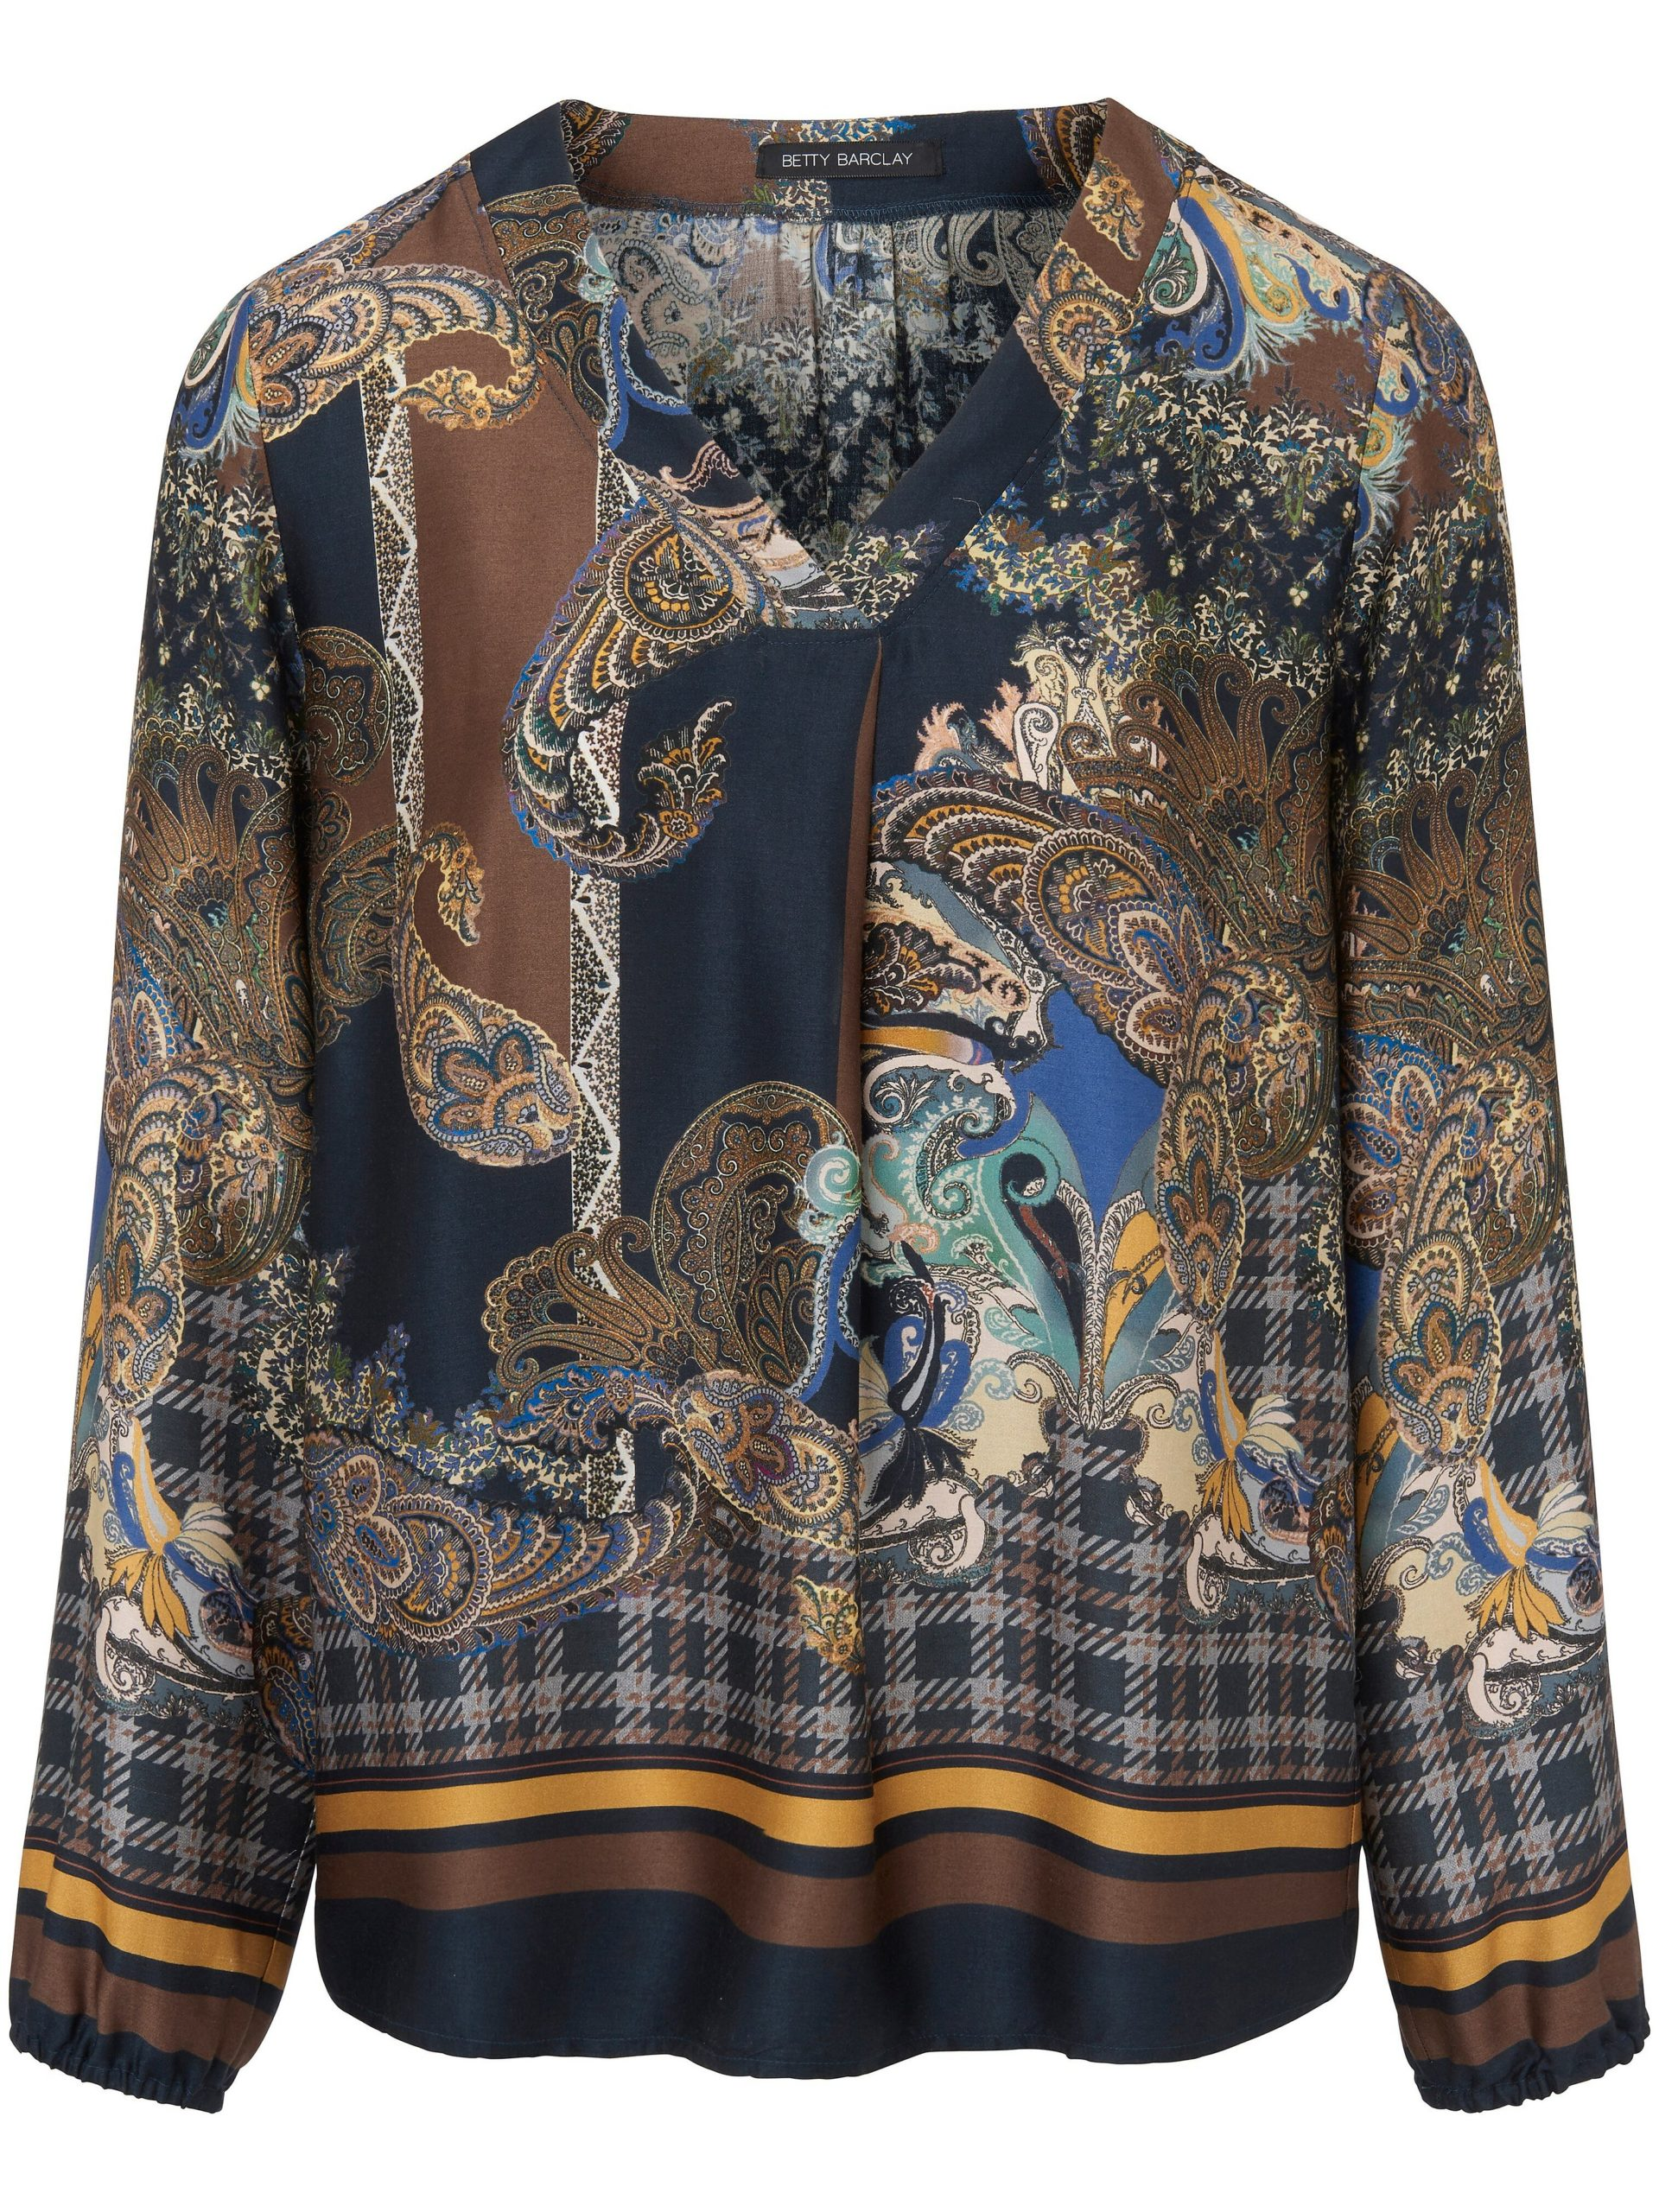 Blouse Van Betty Barclay multicolour Kopen